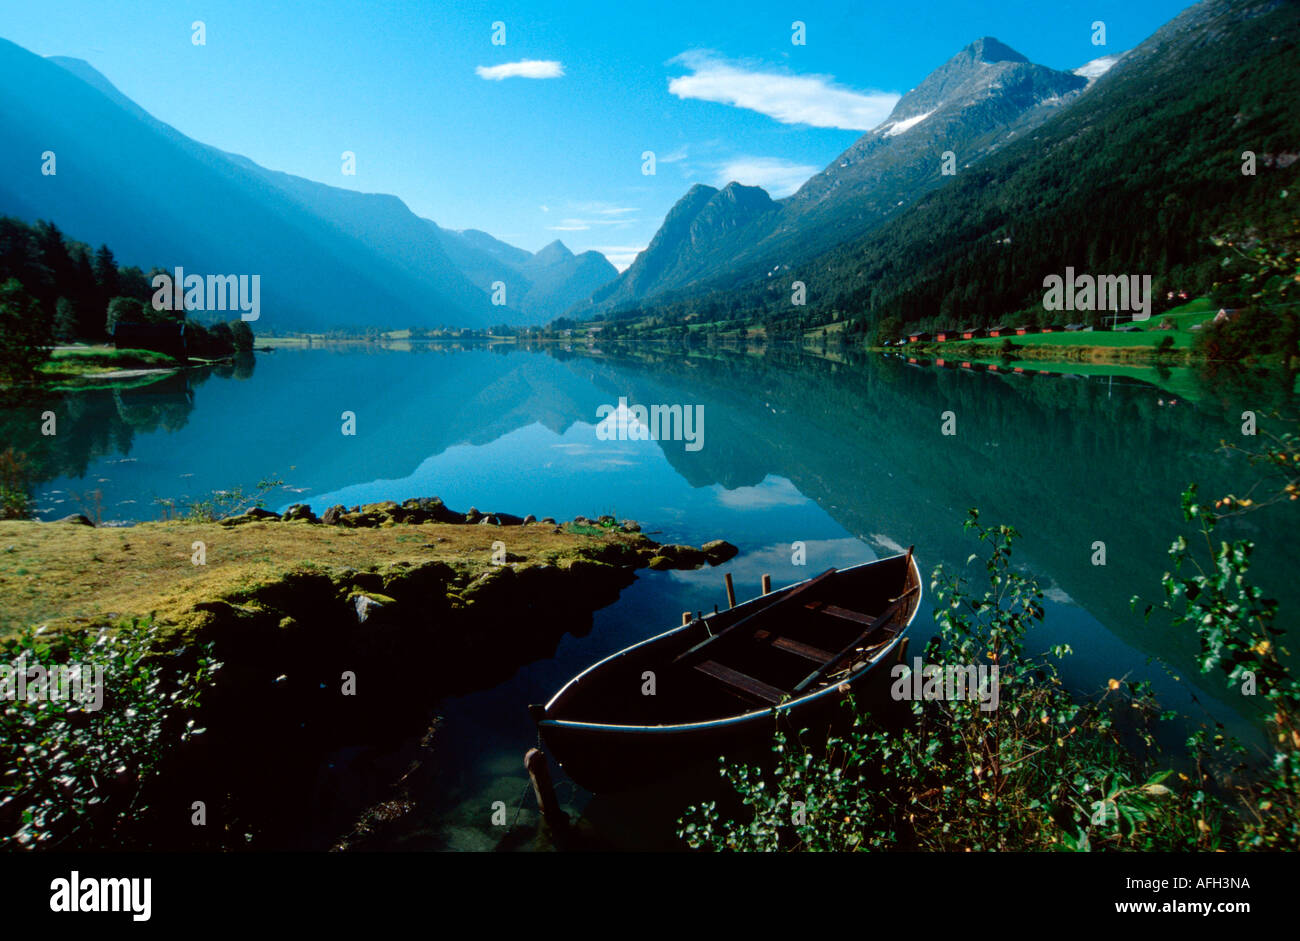 Rowing boat at shore of lake, Olden, Briksdal, Norway - Stock Image